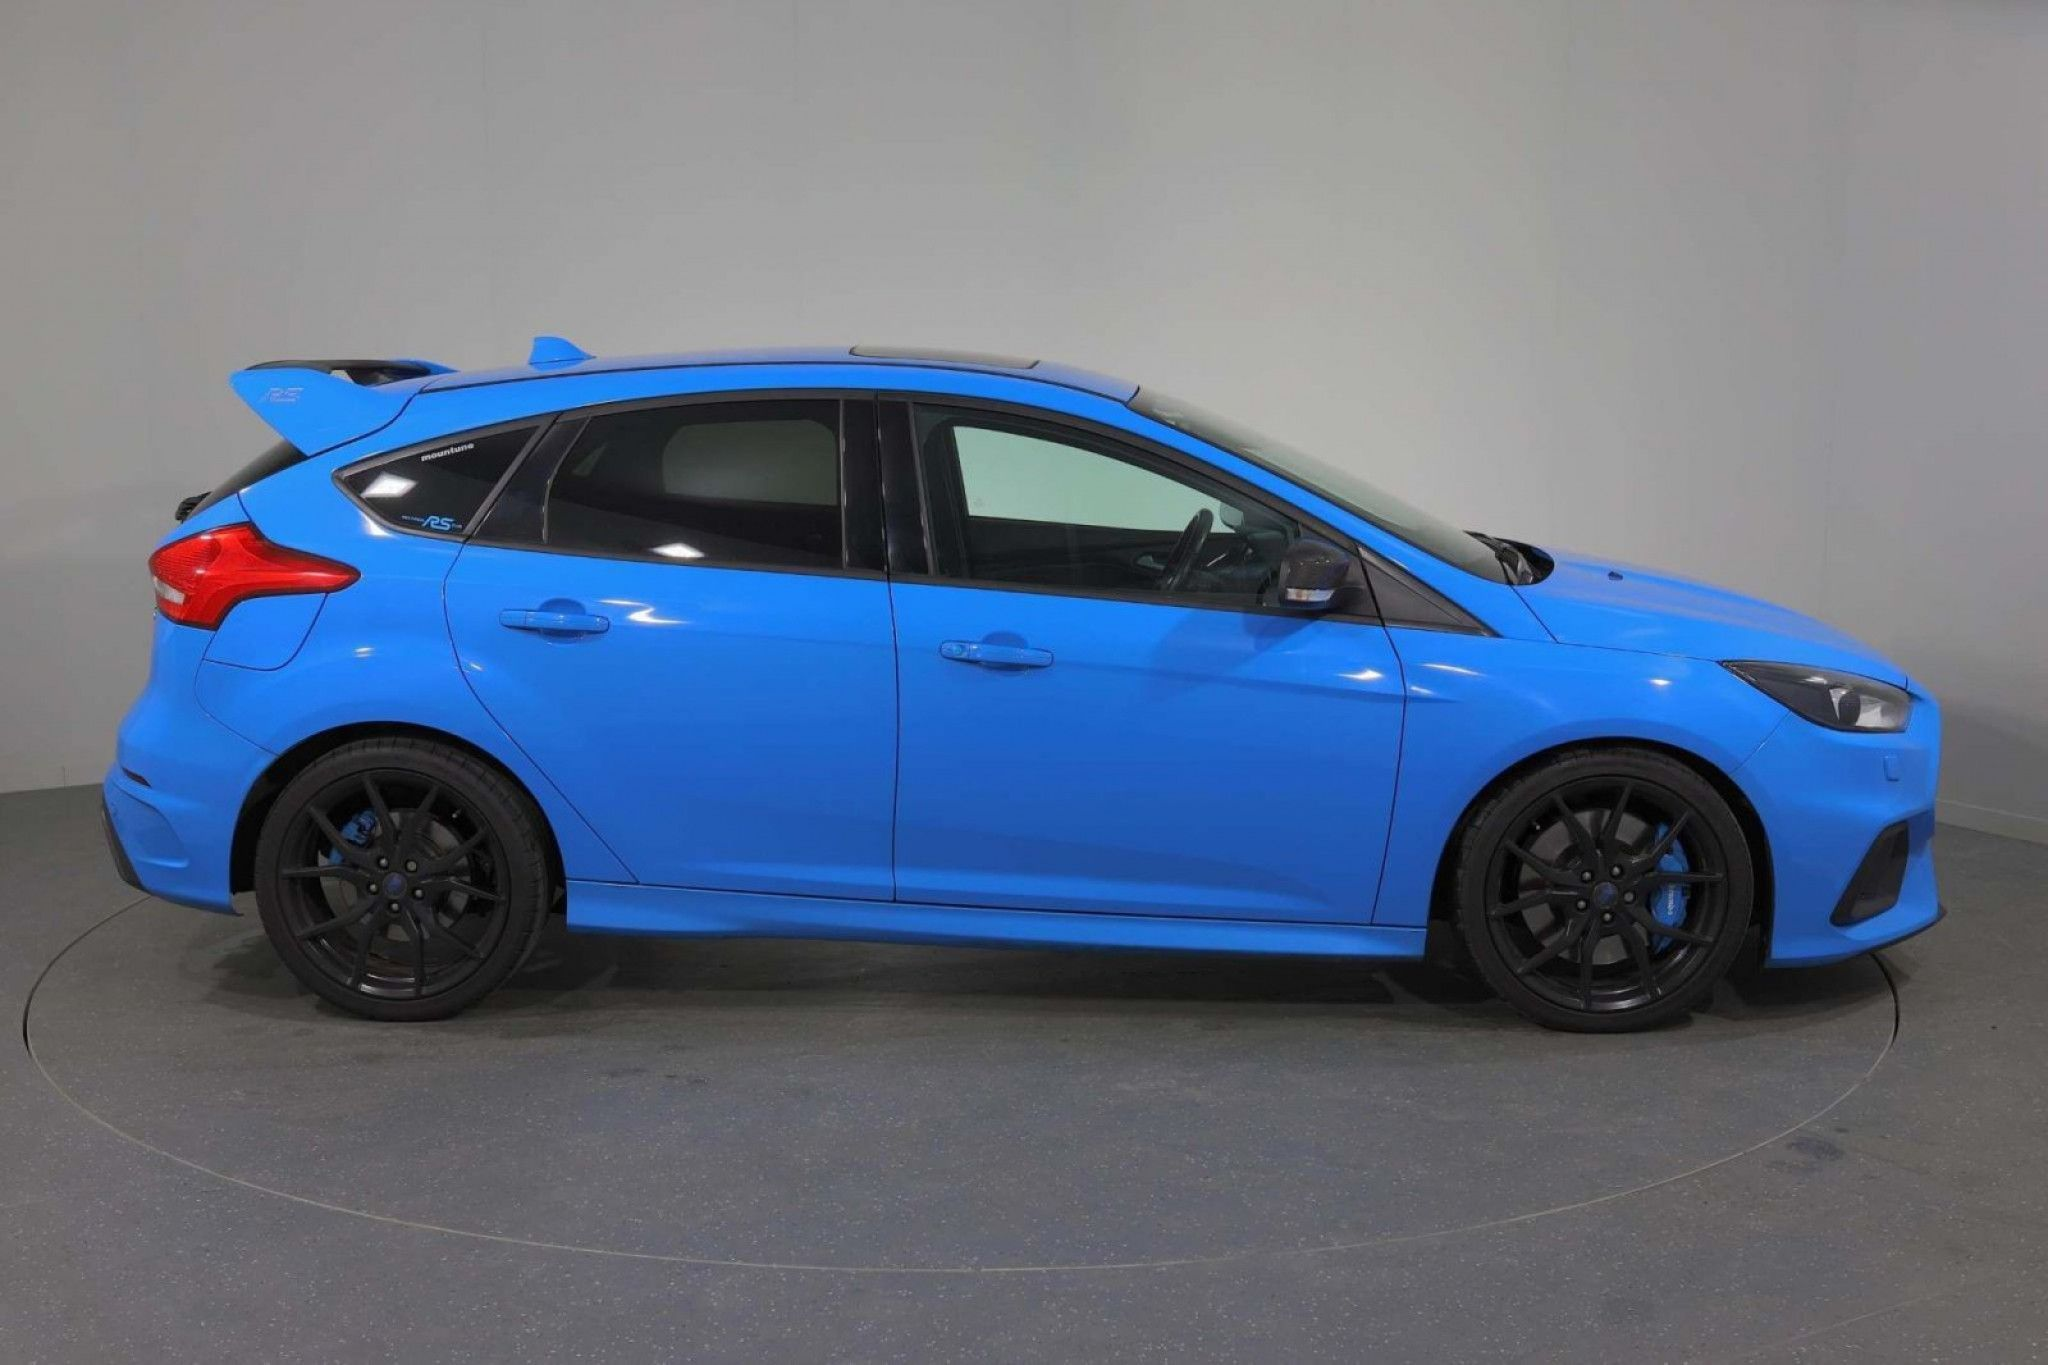 Ford Focus Rs 2 3 Ecoboost 5dr For Sale In 2020 Ford Focus Rs Ford Focus Focus Rs